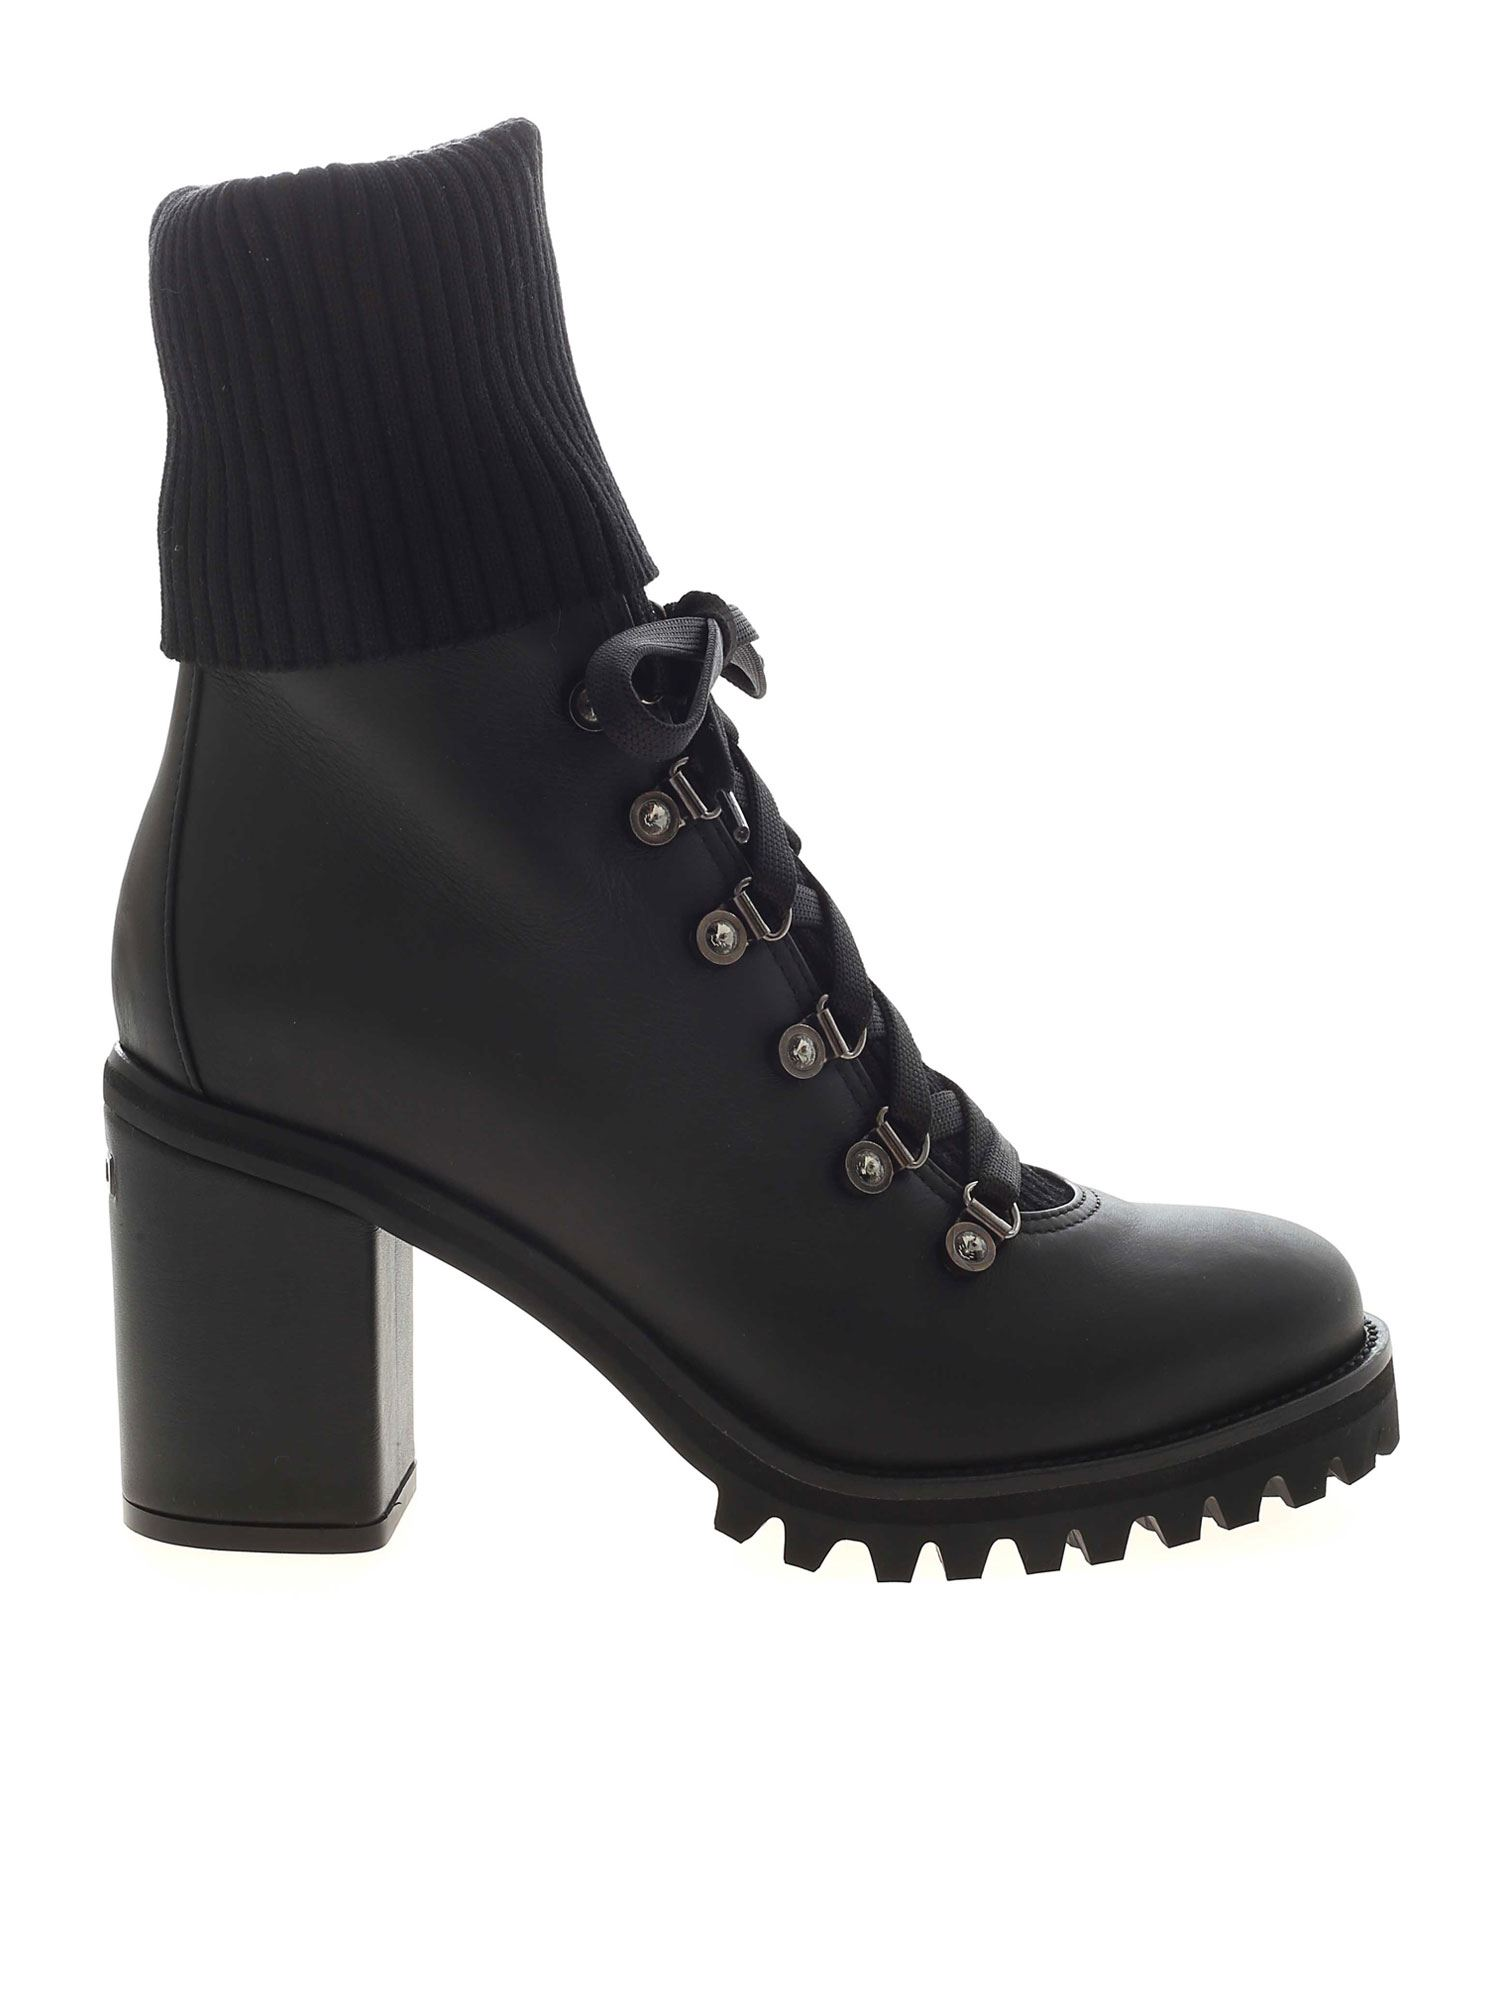 Le Silla ST. MORITZ BLACK ANKLE BOOTS FEATURING HEEL